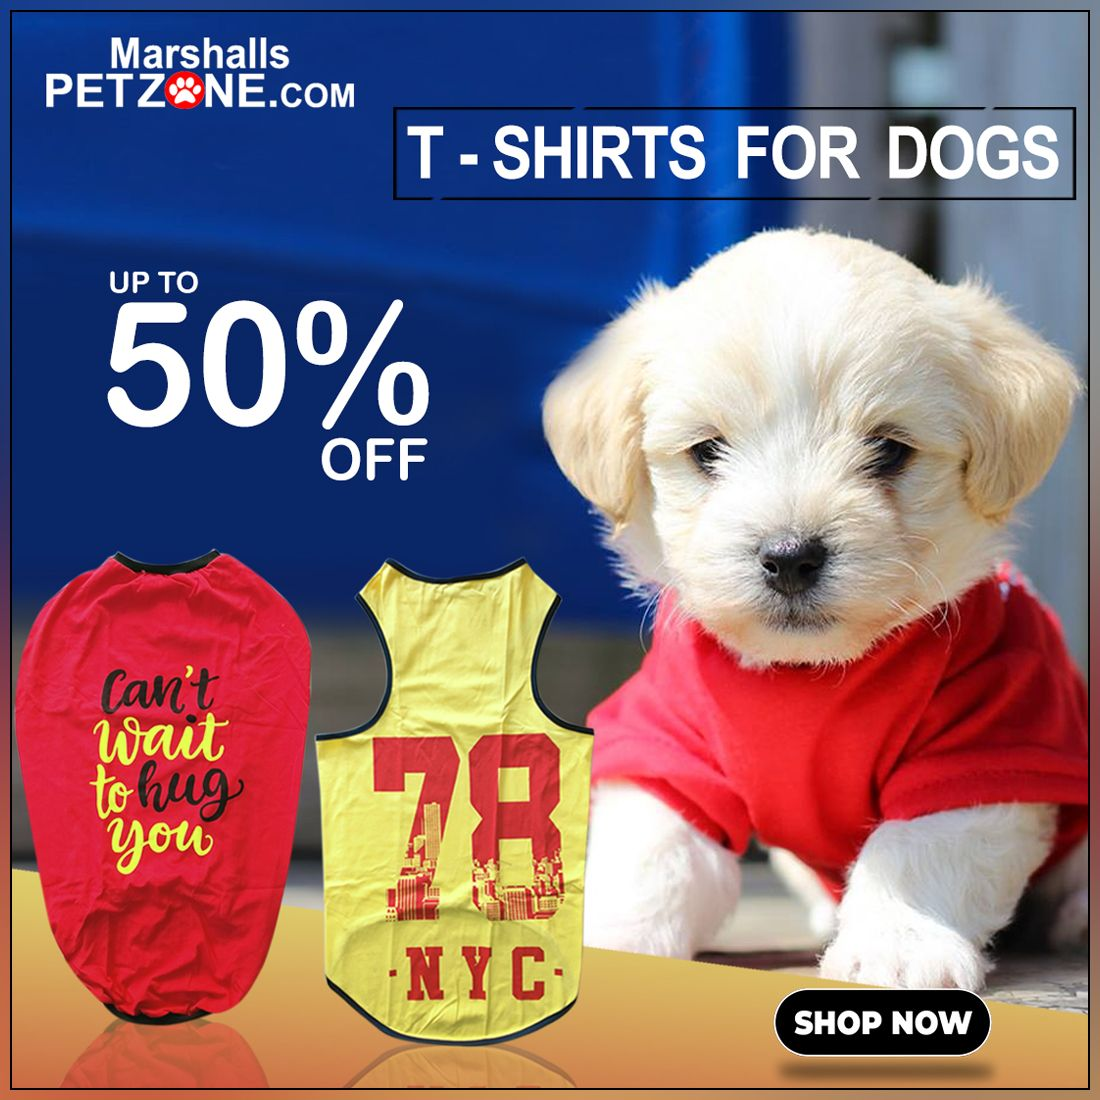 Eyeing The Latest Styles Of Dog T Shirts Get Up To 50 Off On Cozy T Shirts With Images Dog Tshirt Dog Coats Winter Dog